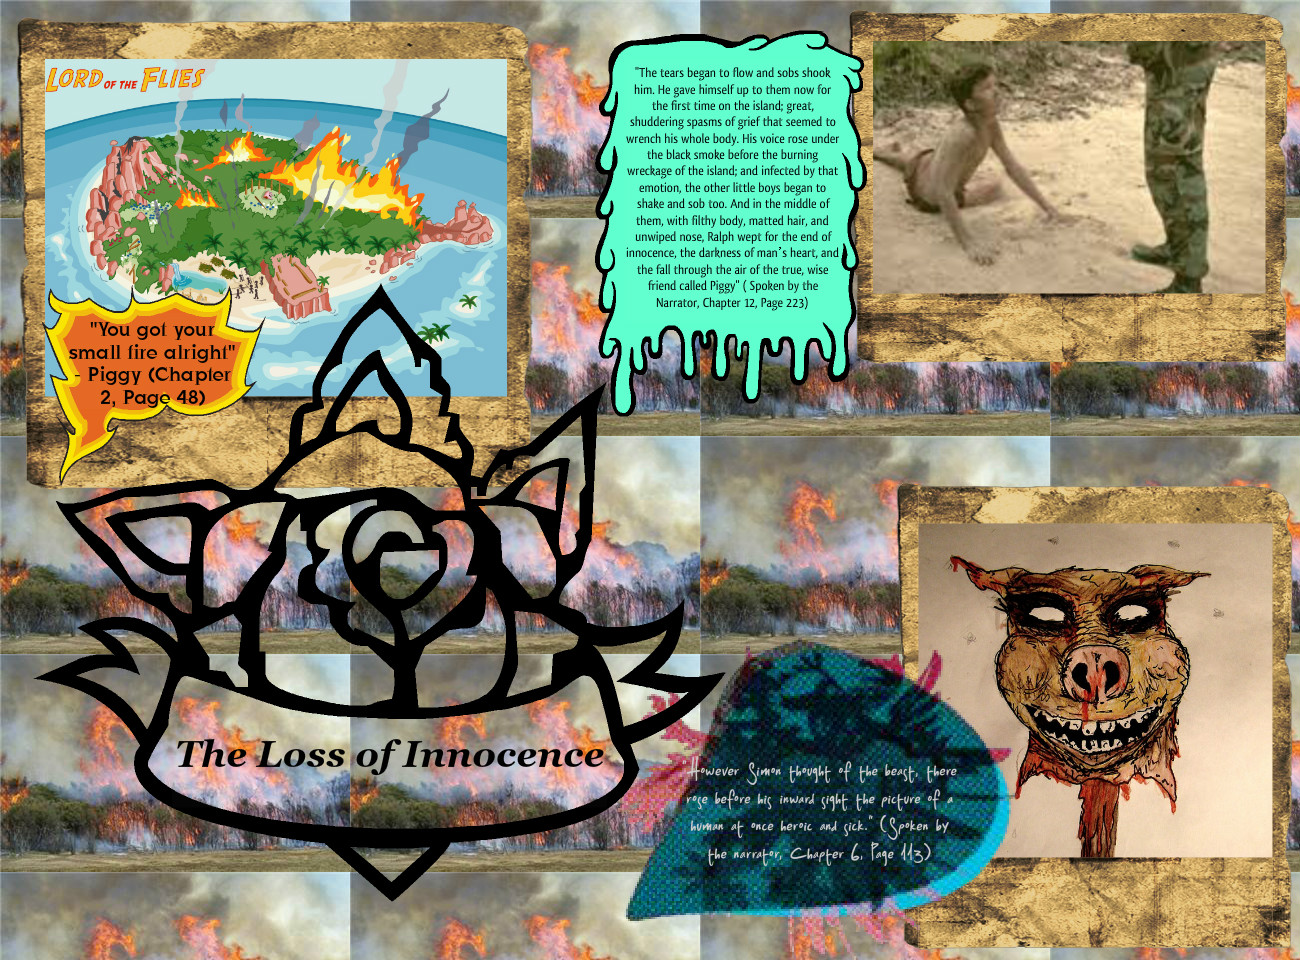 Lord of the Flies: The Loss of Innocence - Visual Presentation